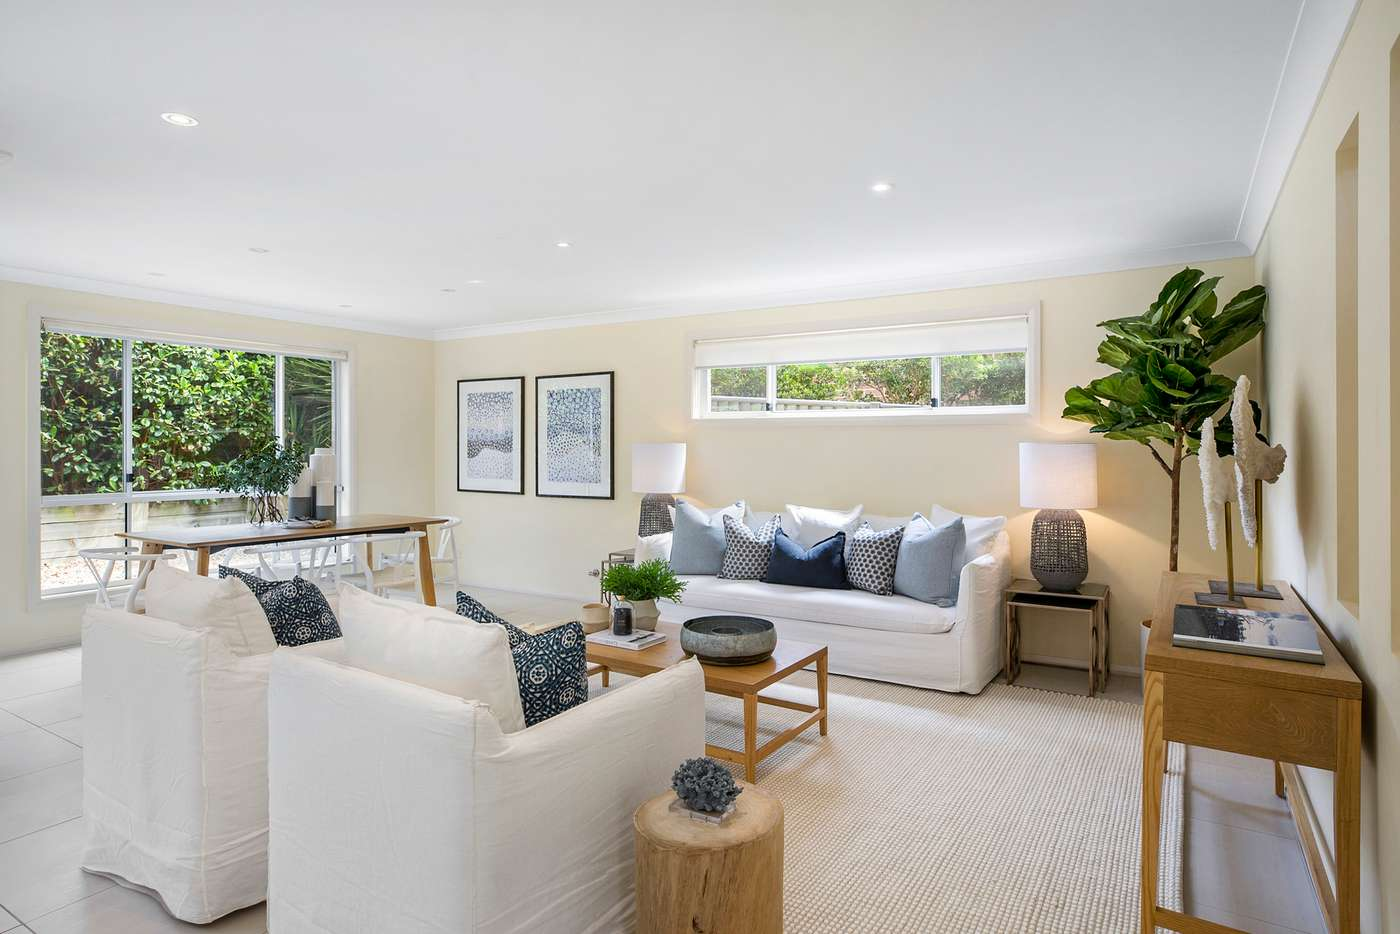 Fifth view of Homely house listing, 12 Ben Love Place, Beacon Hill NSW 2100